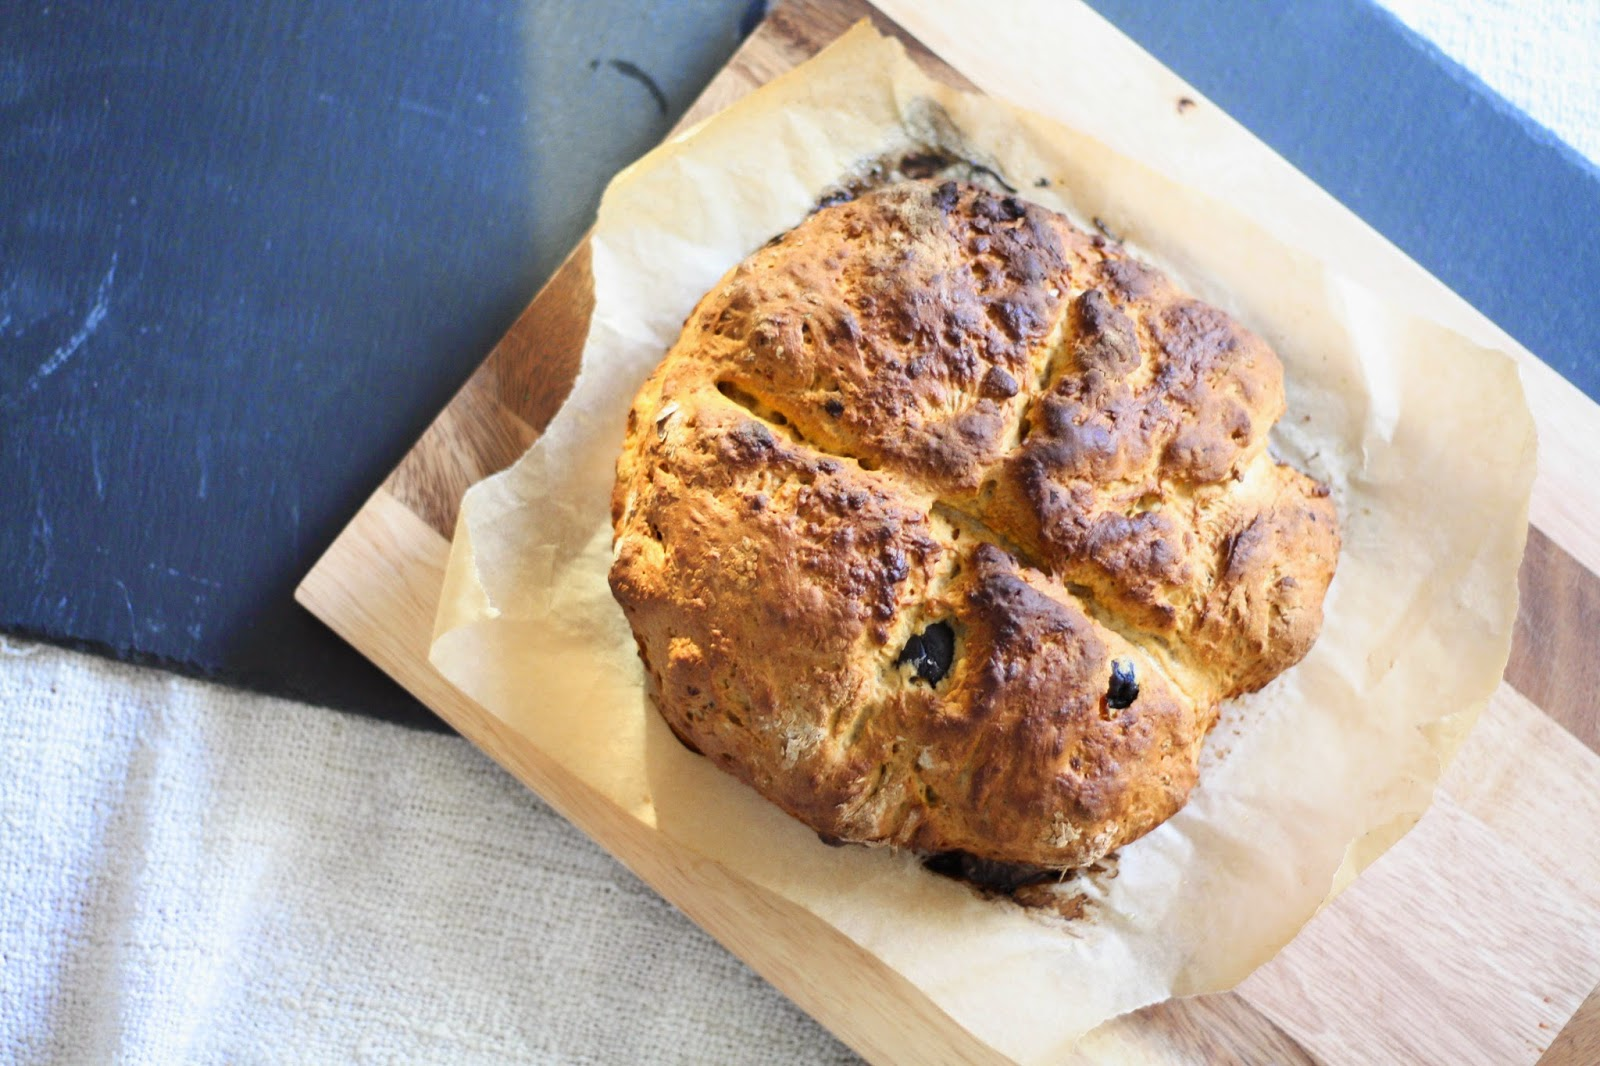 Pesto soda bread with pesto & olives recipe